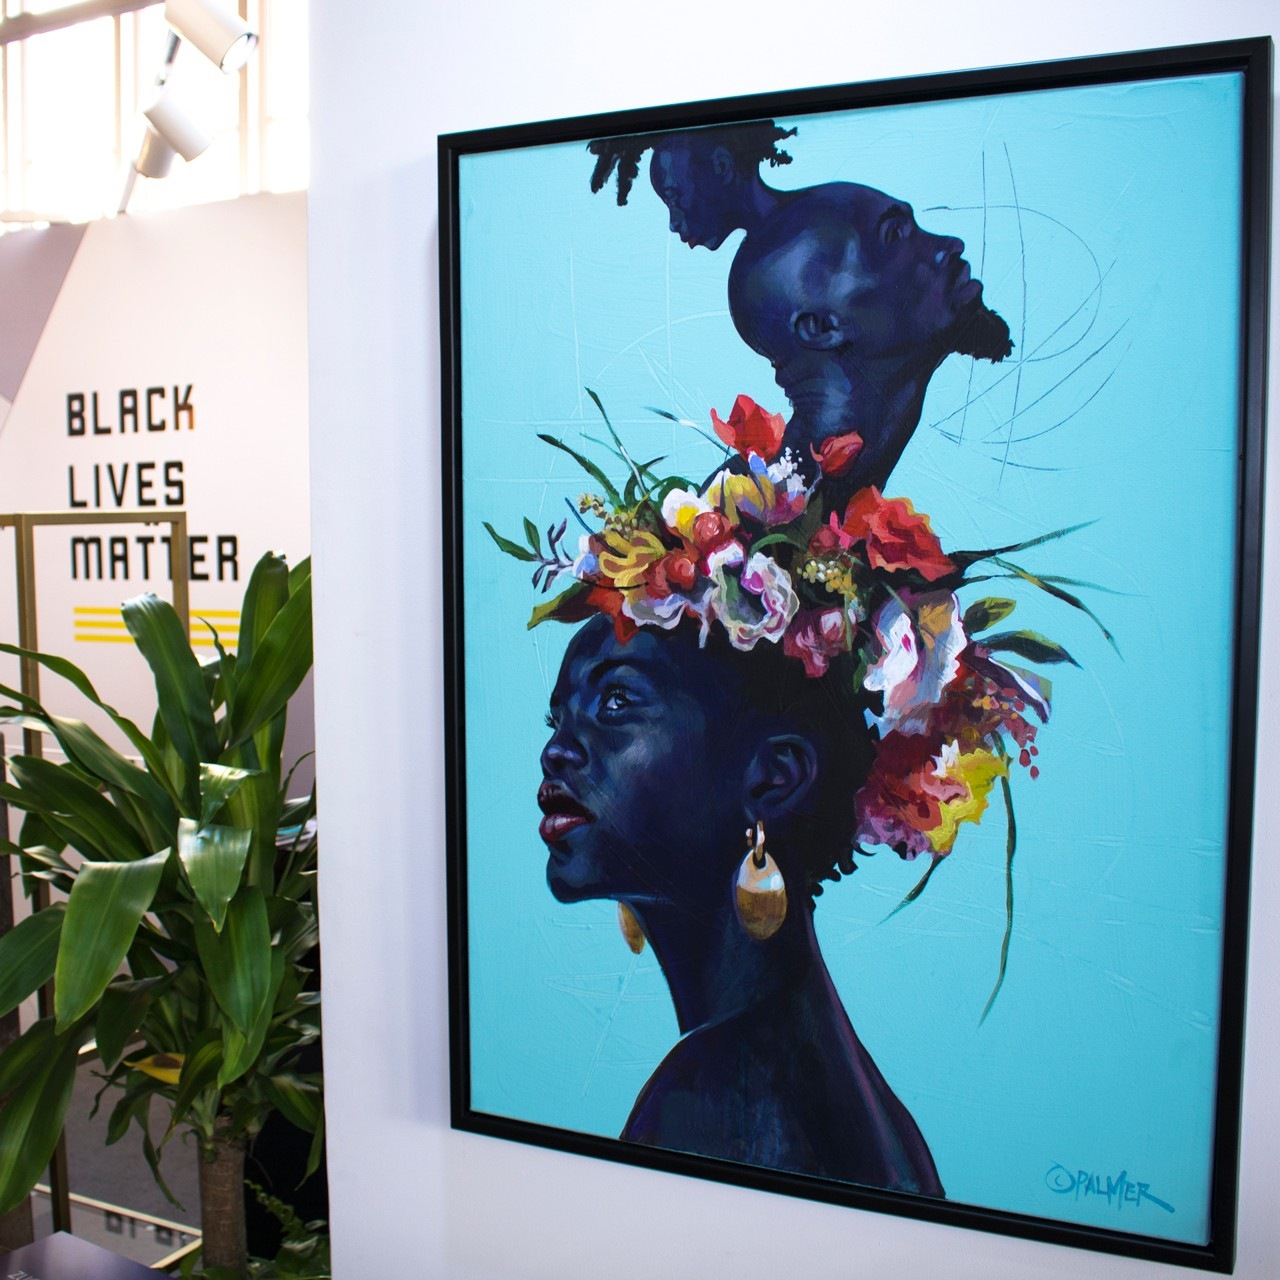 prizm art fair mikhaile solomon founder interview black art artists people of color african diaspora love in the time of hysteria art show